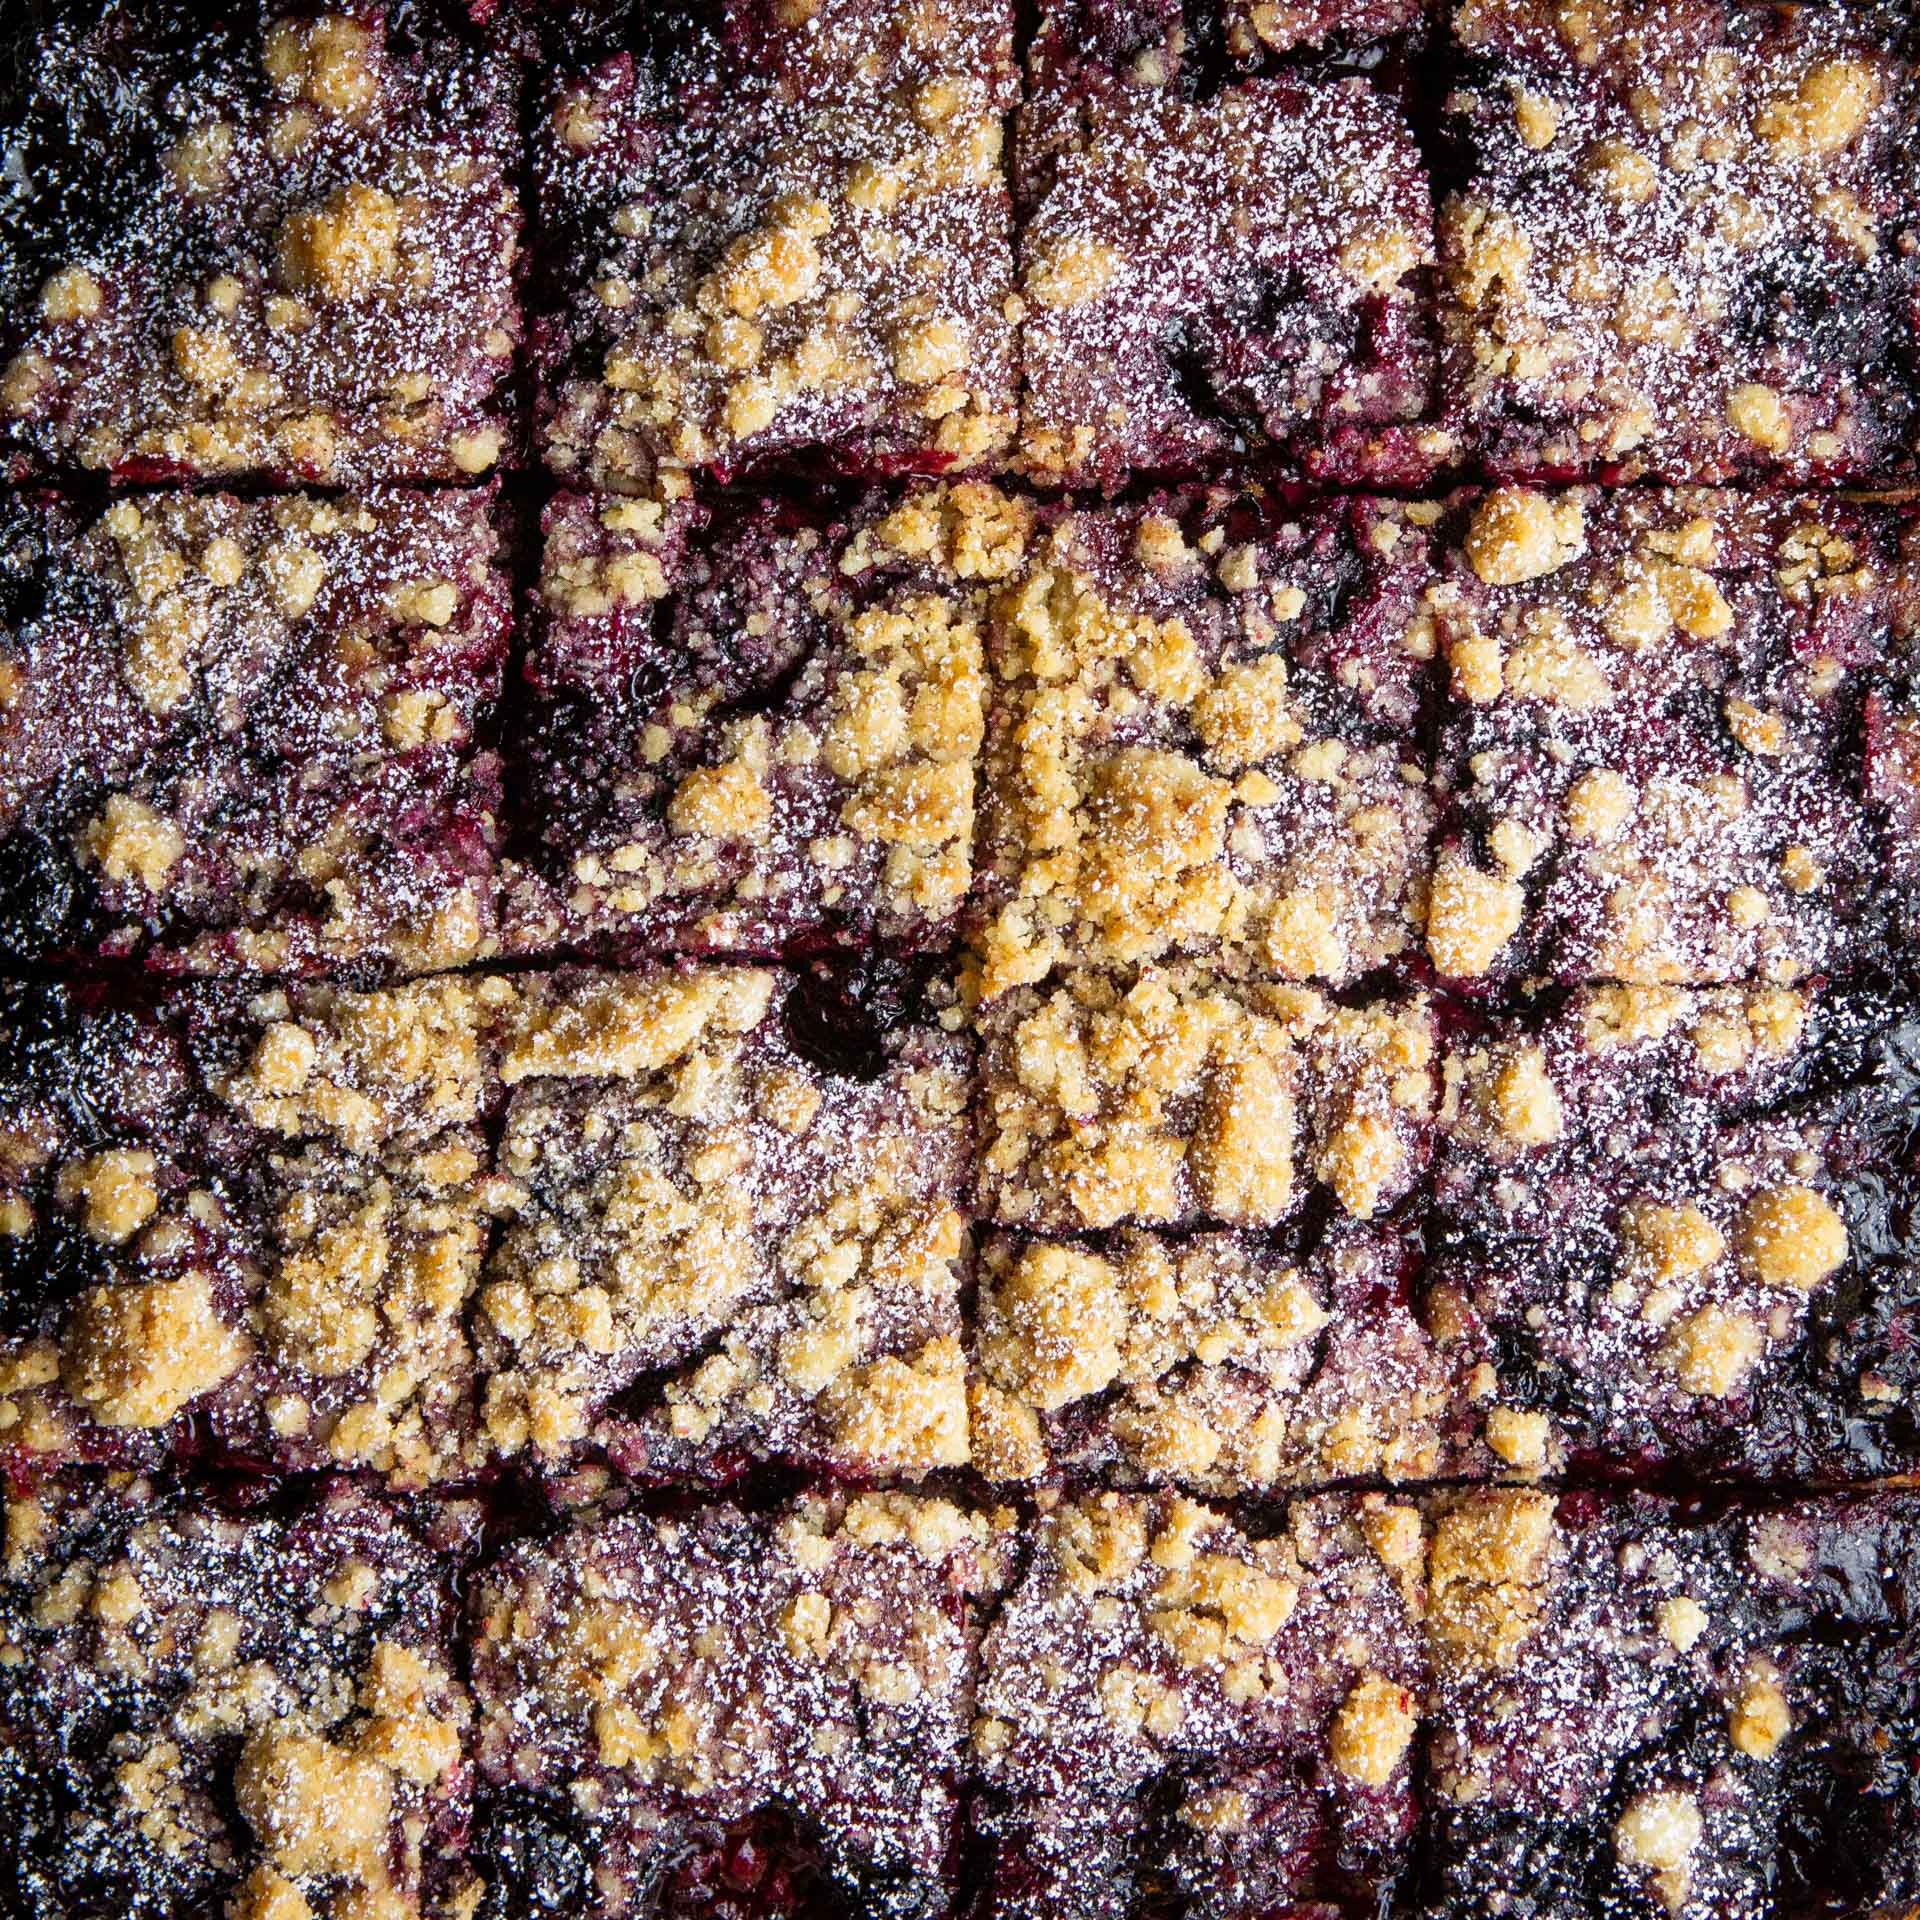 blackberry-crumb-bars-1.jpg